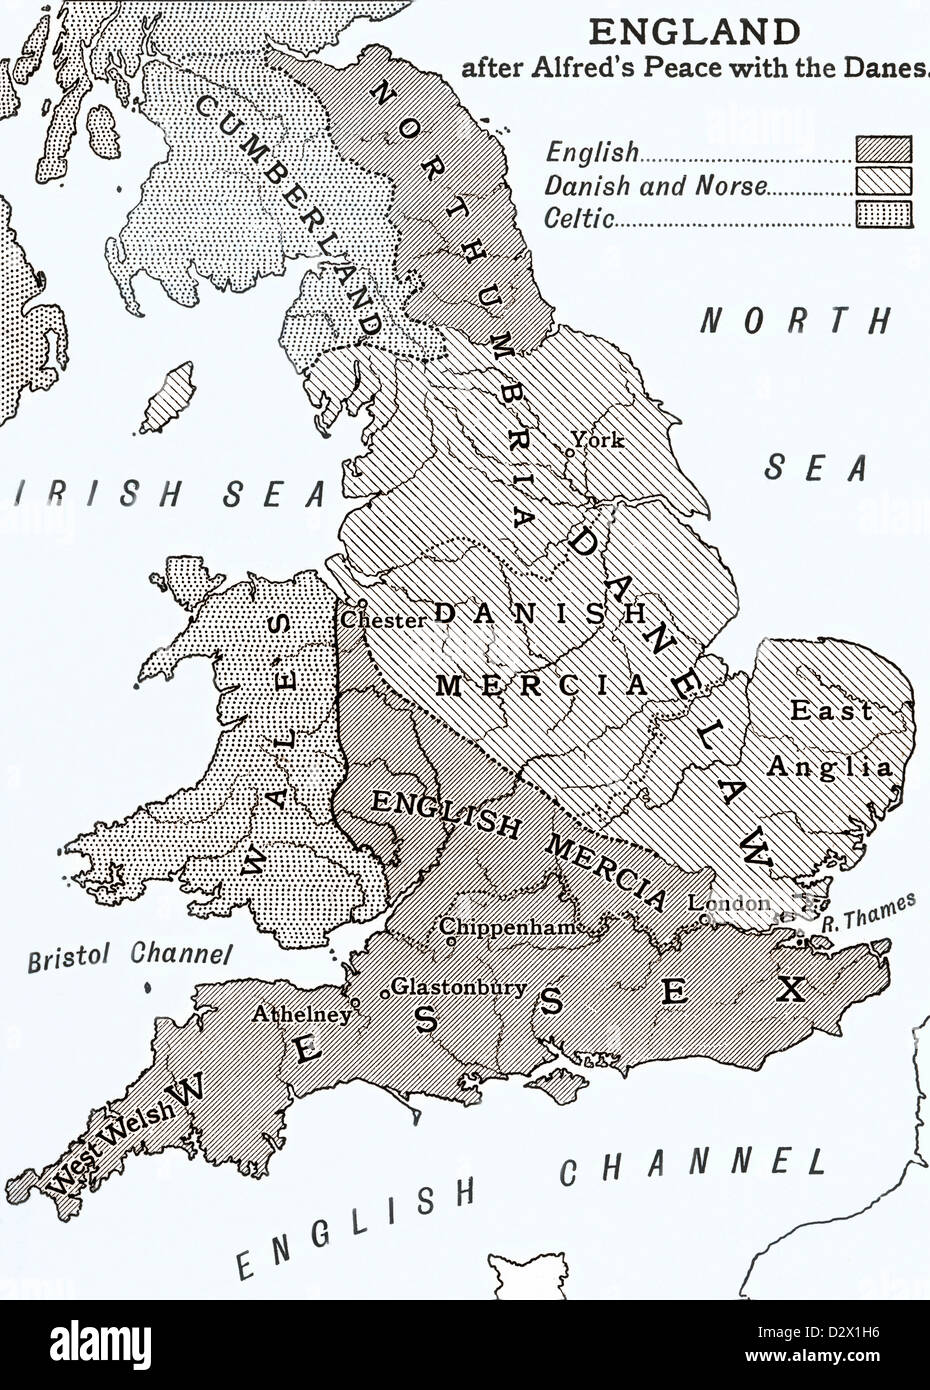 Map Of England In 9th Century.A Map Of England After King Alfred S Peace With The Danes In The 9th